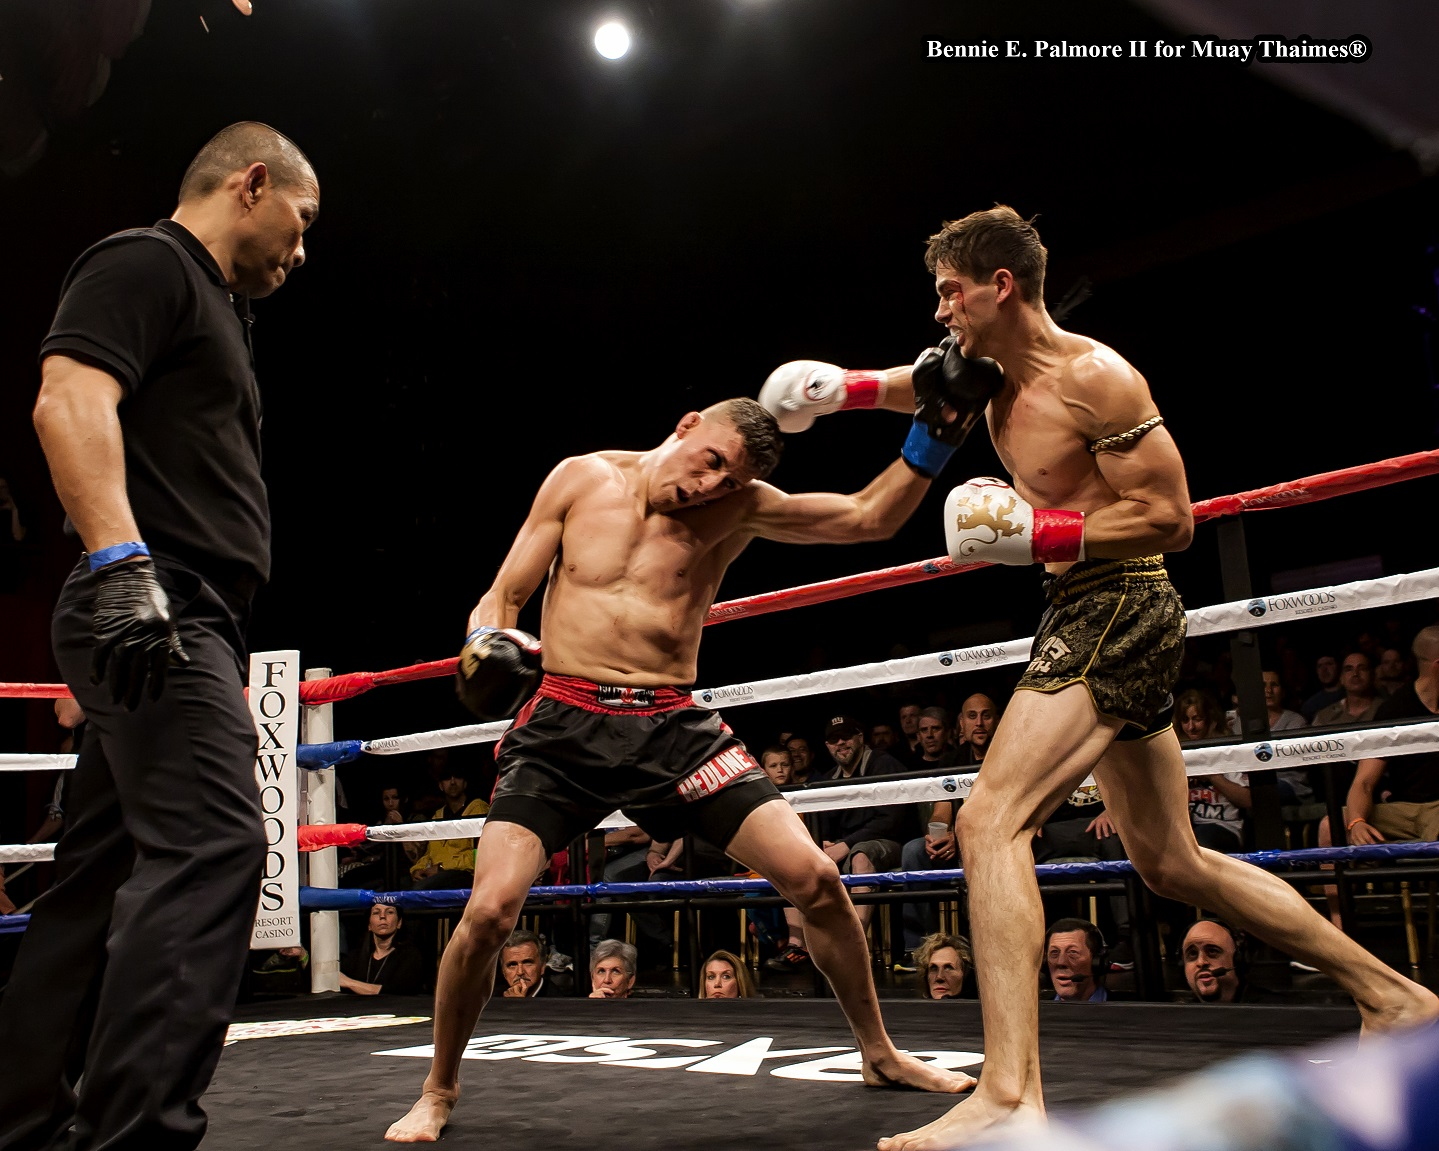 Pedro Gonzales (Redline Fight Sports in Quincy, Massachusetts) def. Nick Chasteen (Best Muay Thai in Tempe, Arizona) by TKO at 2:43 from Physician Stoppage in Round 2.  Professional 148 lbs. Men.  Scheduled for 5 x 3 Rounds.  Photo by Bennie E. Palmore II.